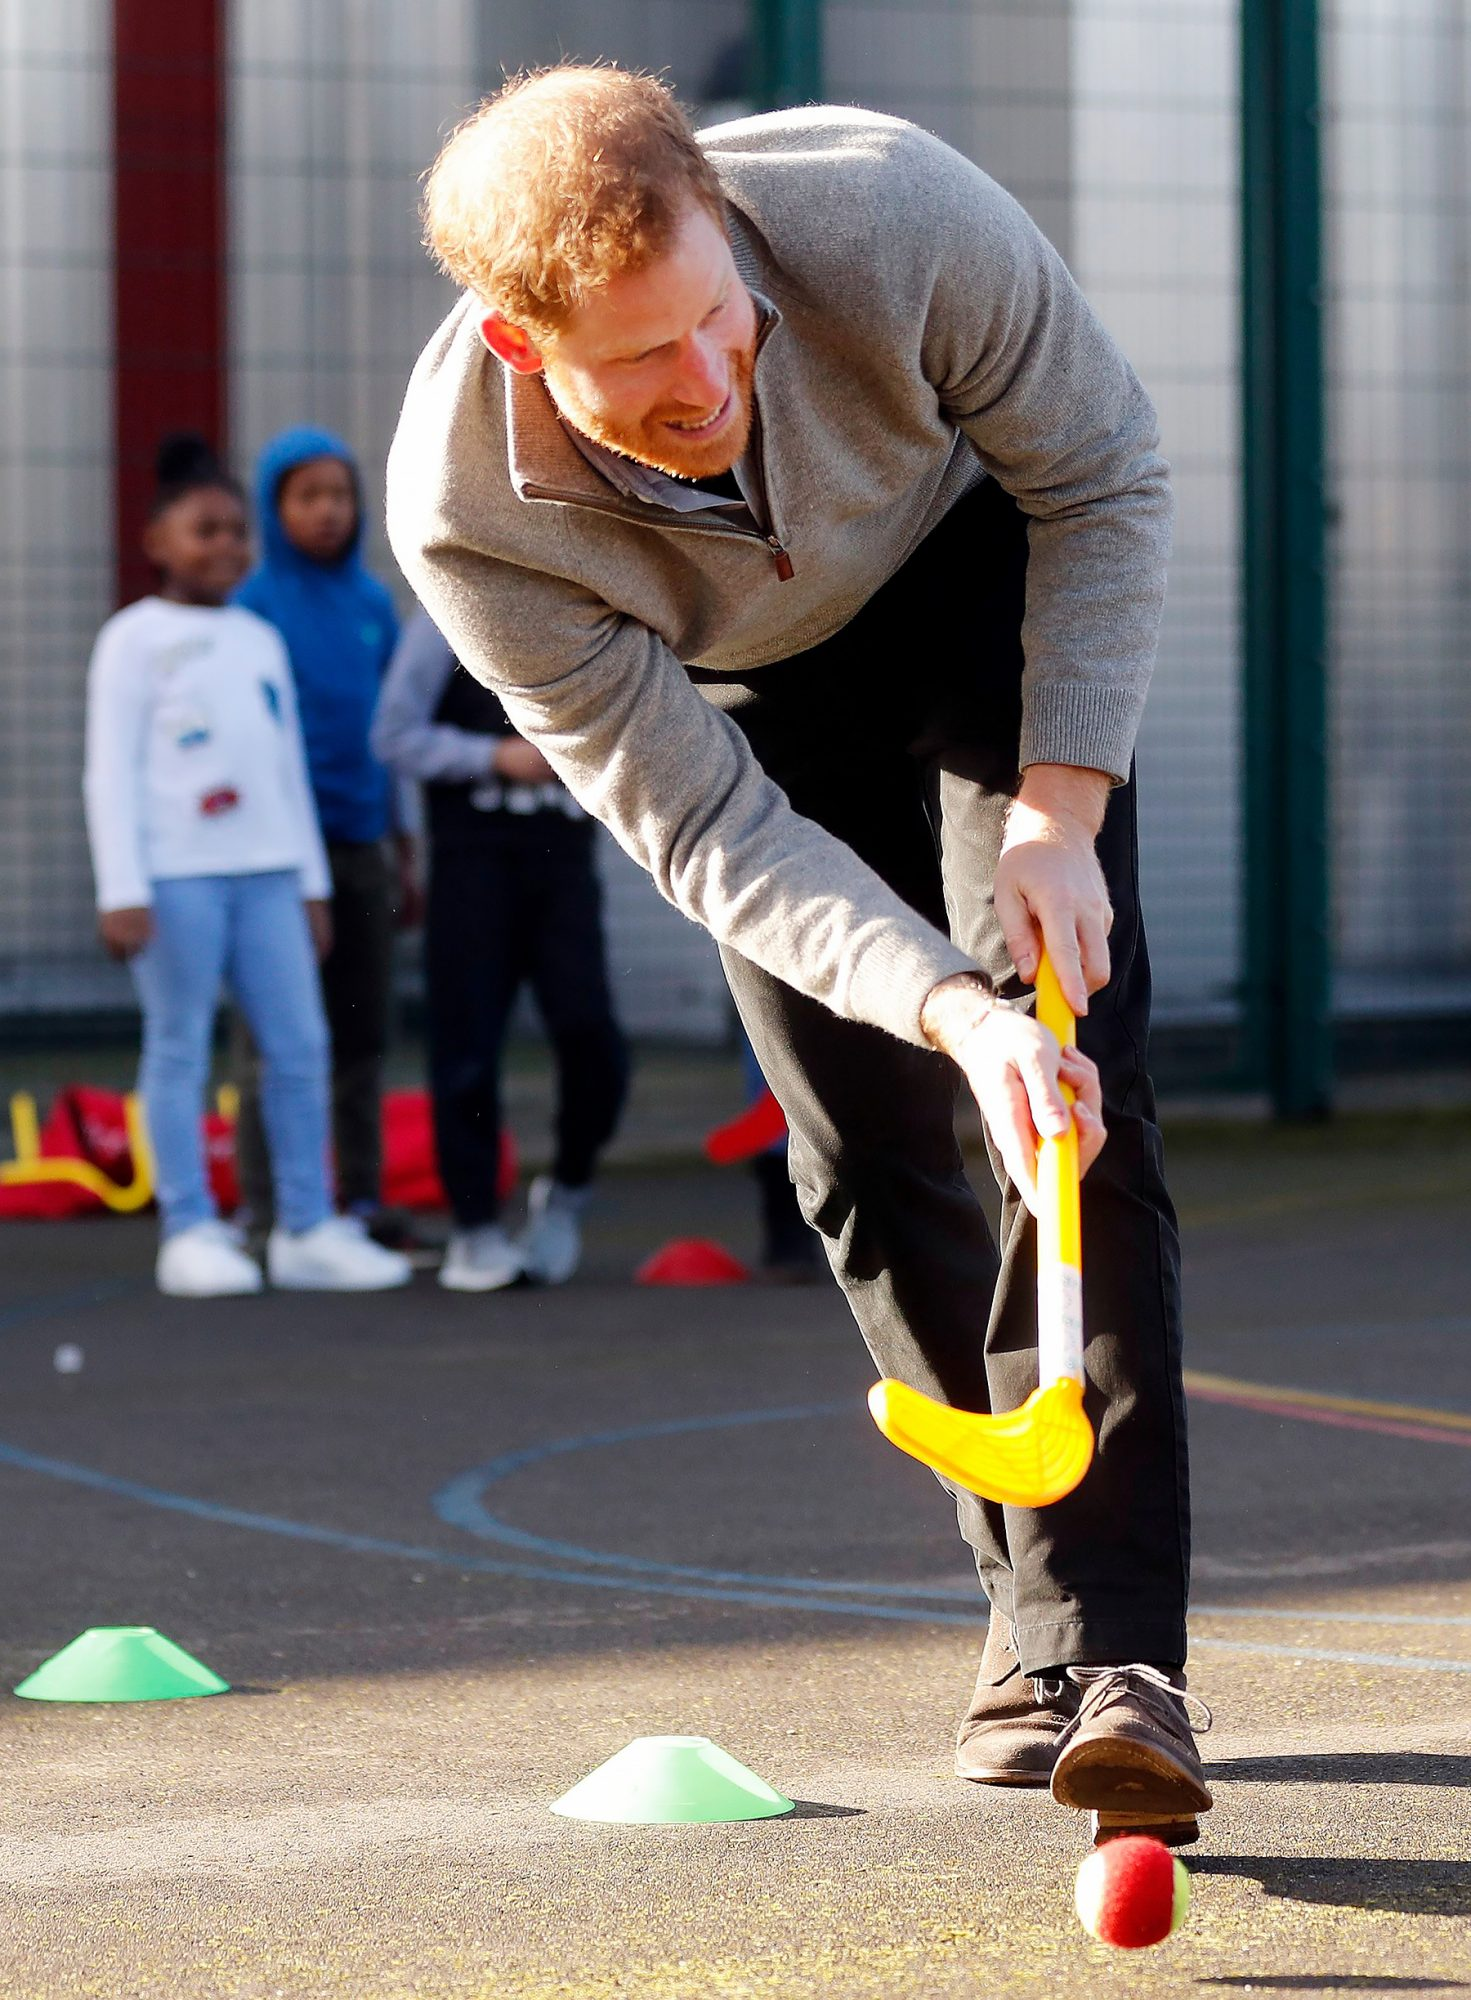 Fit and Fed campaign at the Roundwood Youth Centre, London, UK - 15 Feb 2018